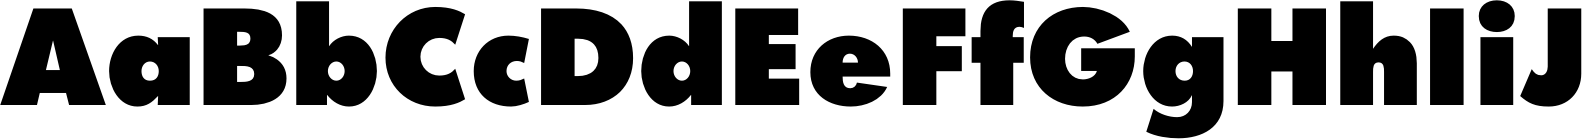 Graphicus DT ExtraBold Font